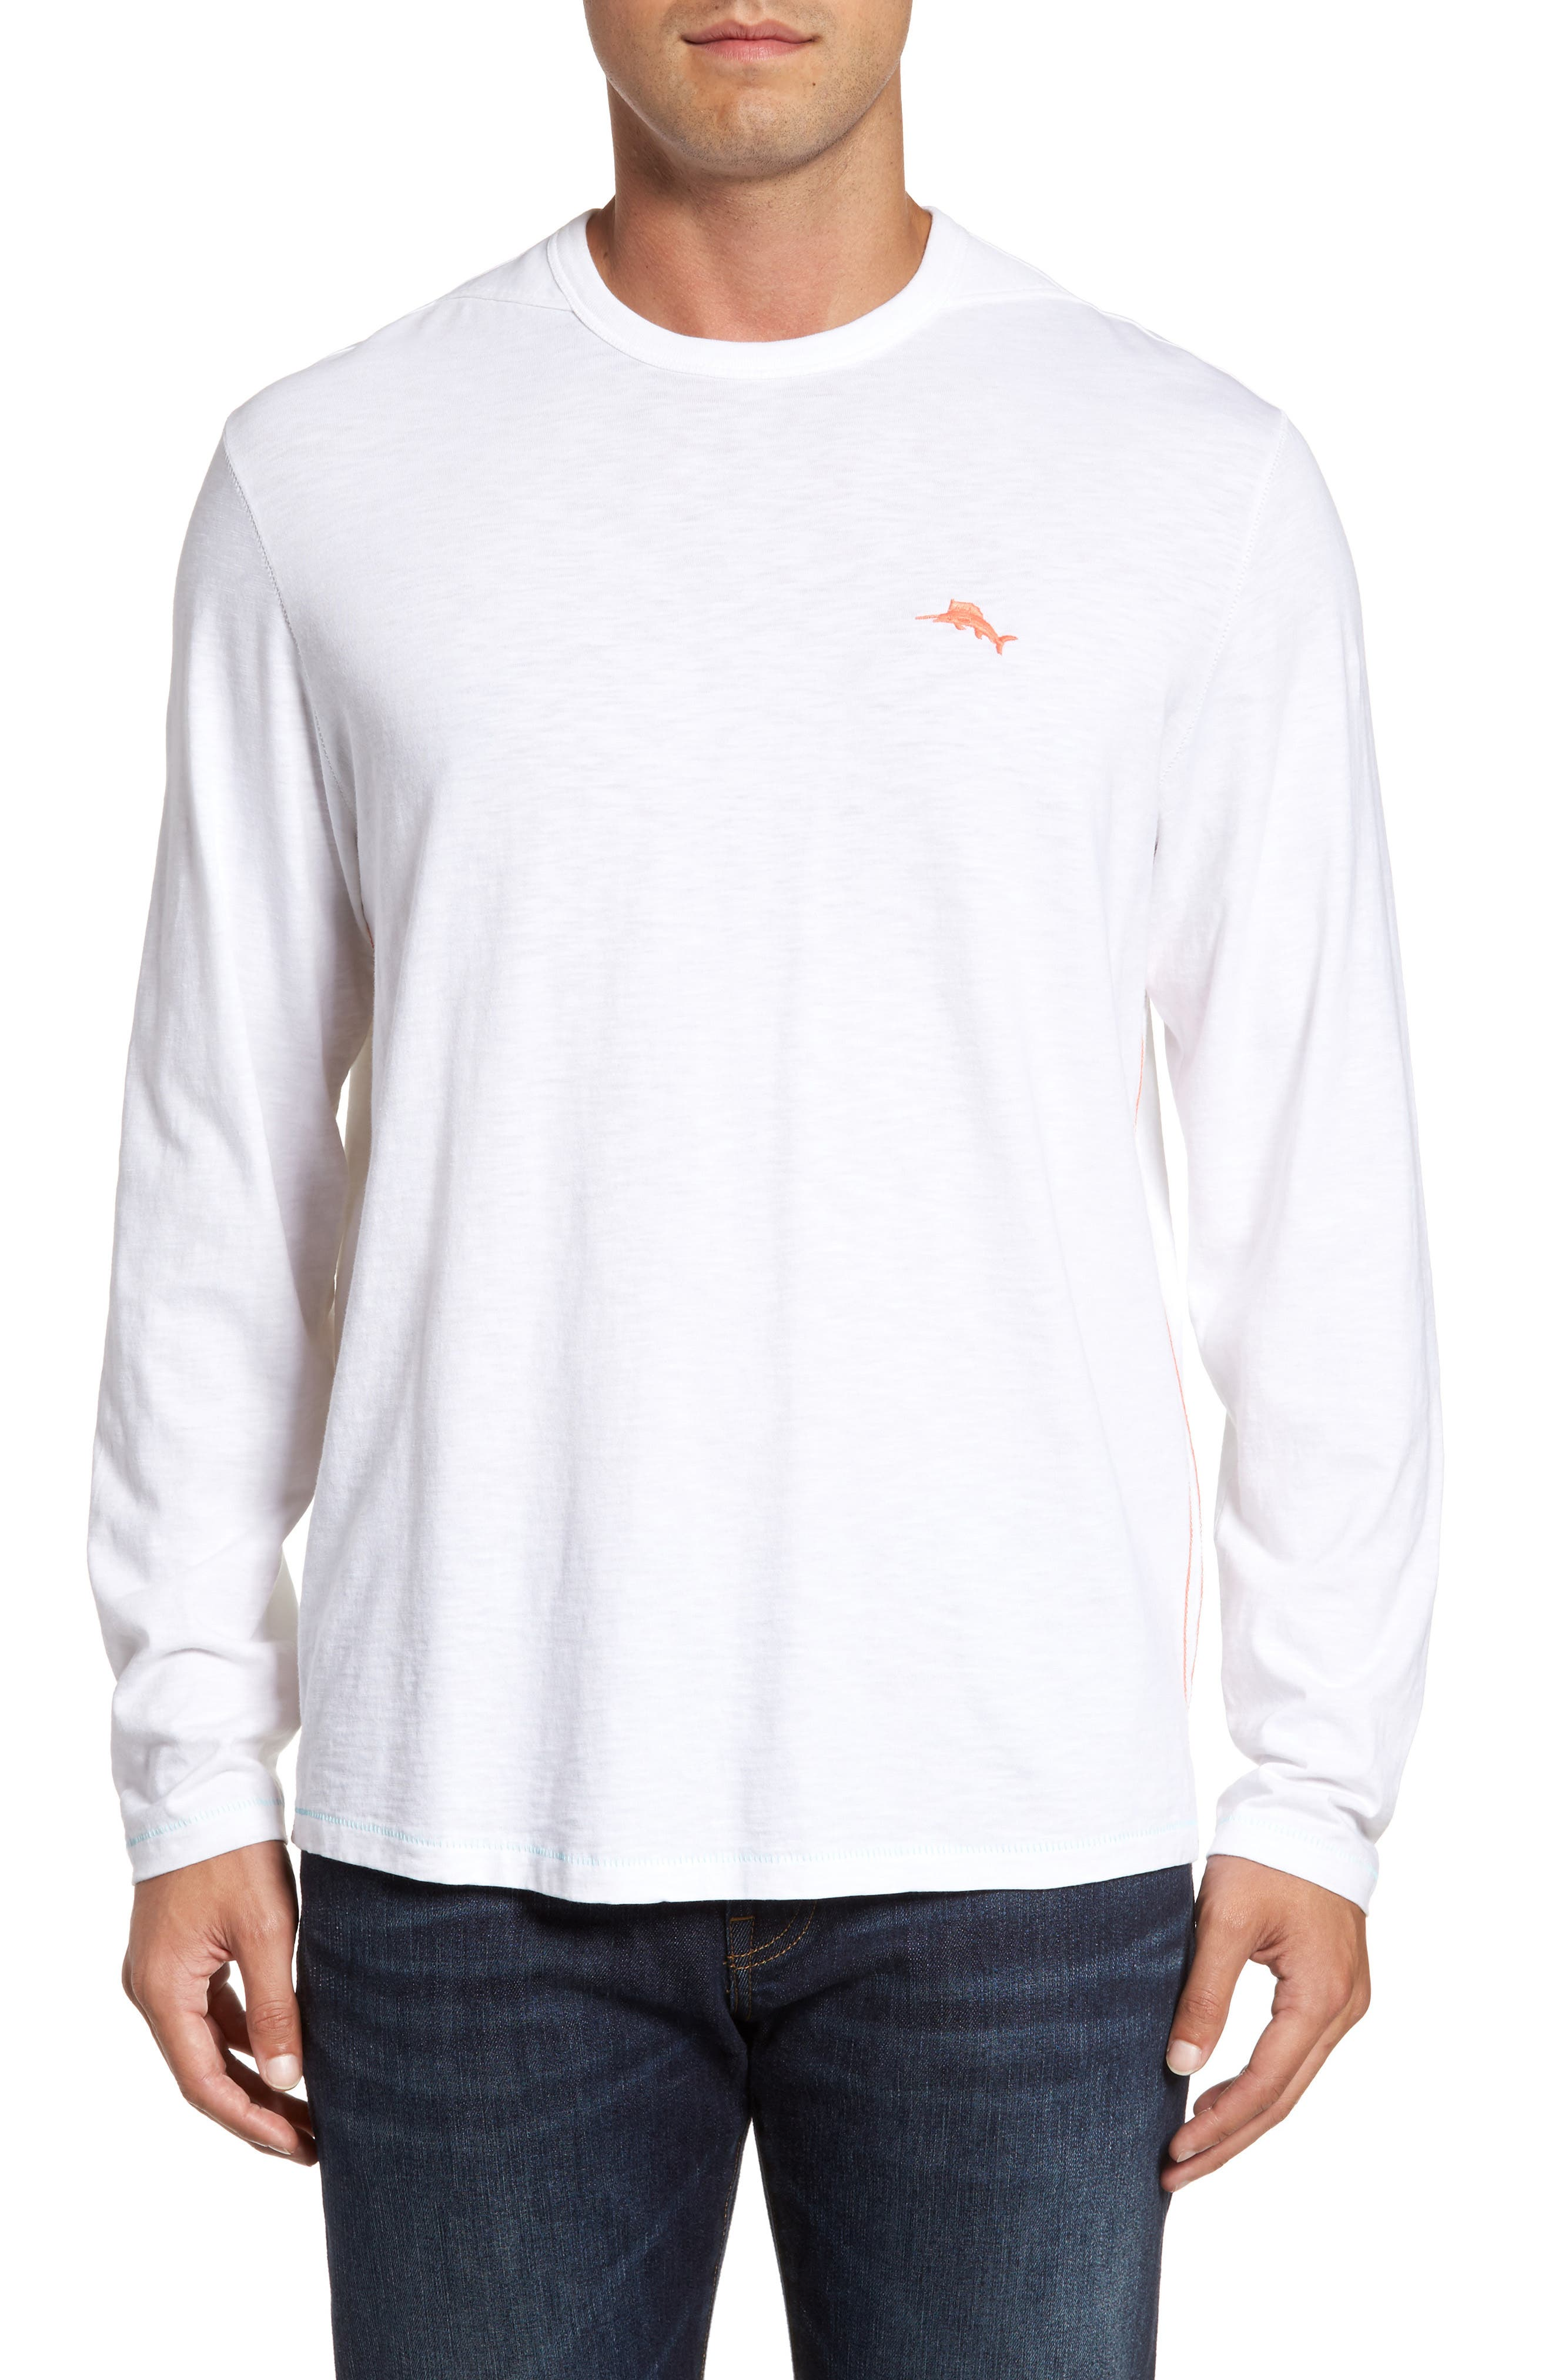 Relax at Sea Lux T-Shirt,                         Main,                         color, White